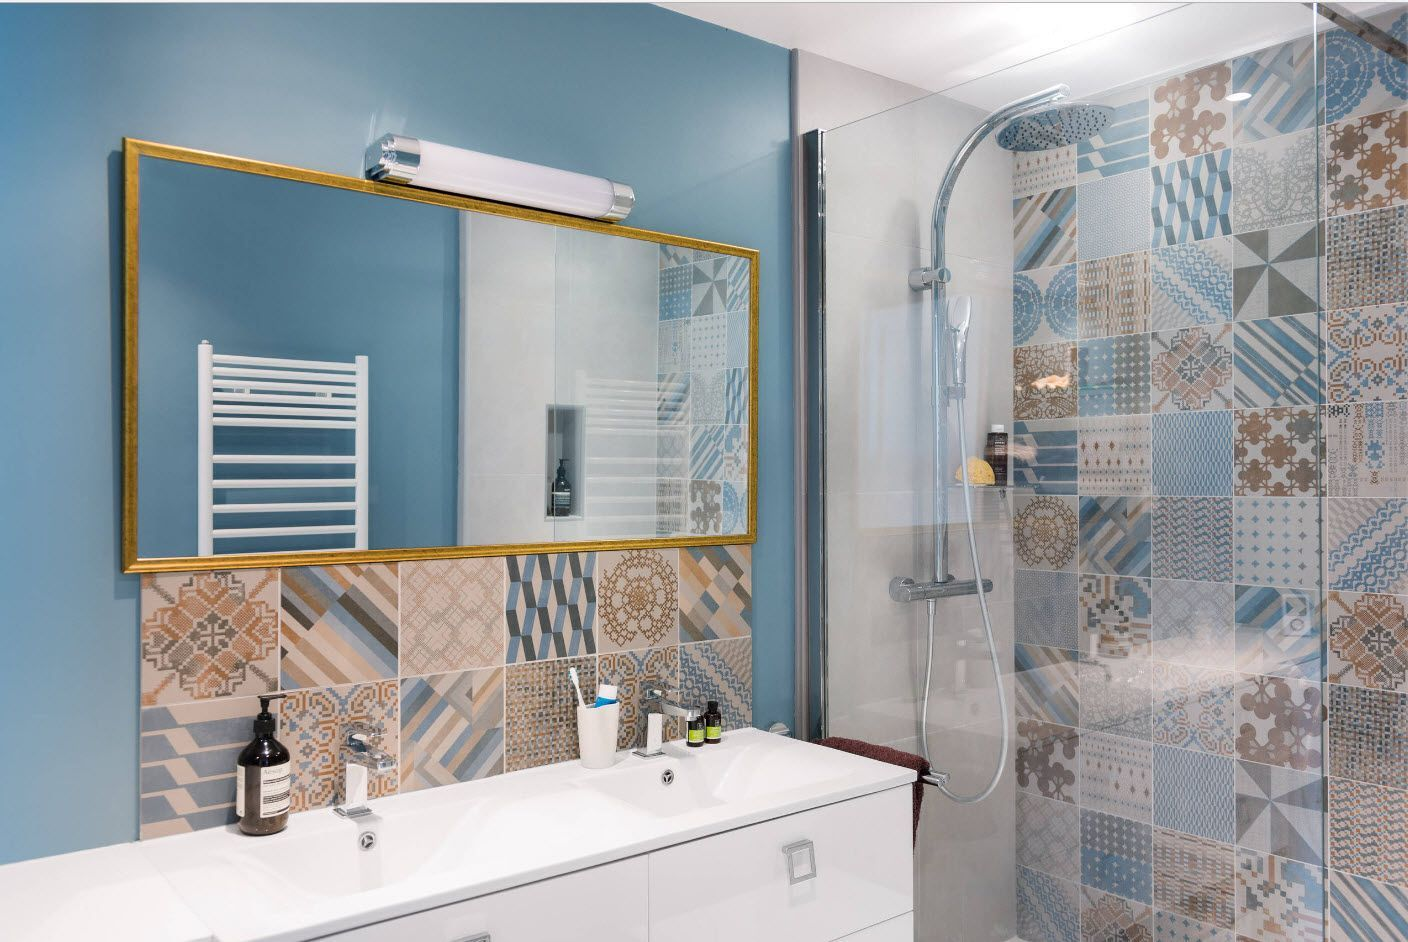 Mix of finishing materials and techniques in the bathroom